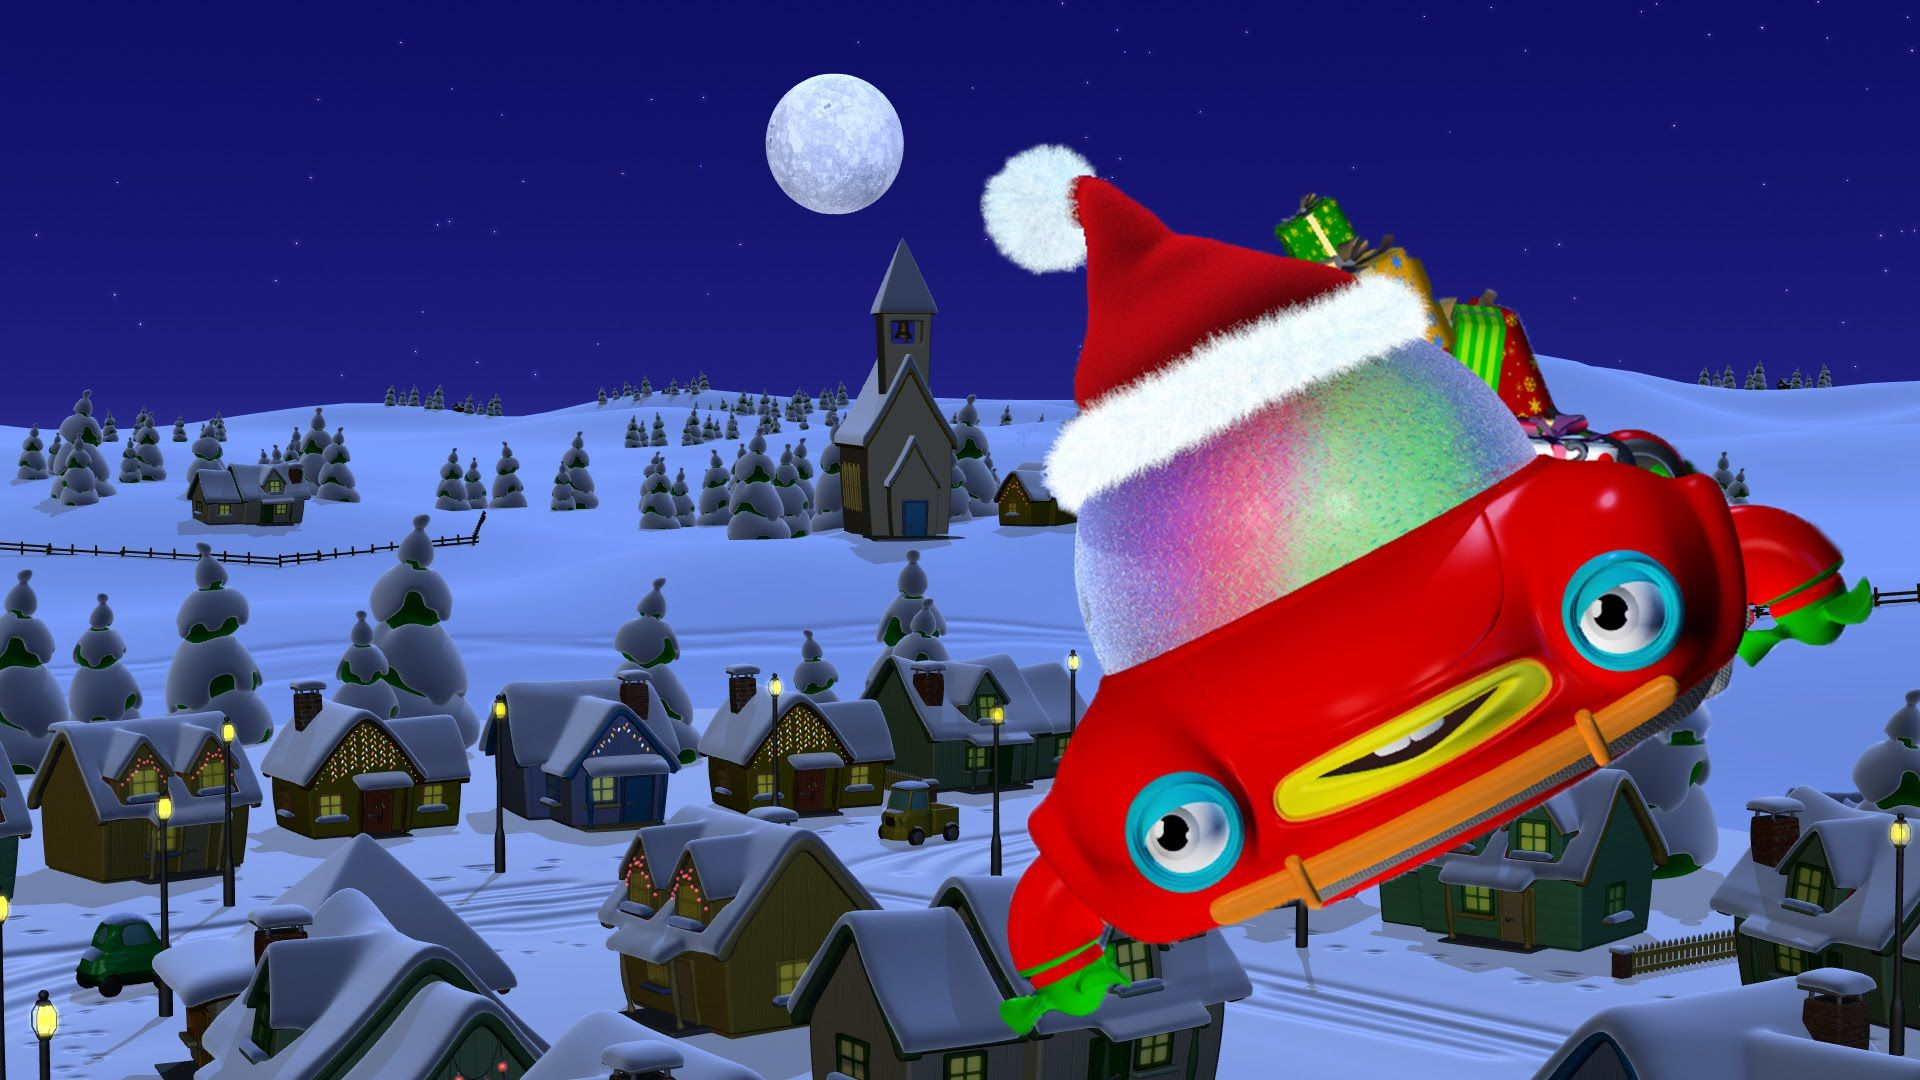 Merry Christmas From Tutitu Watch Our New Xmas Video Greeting And